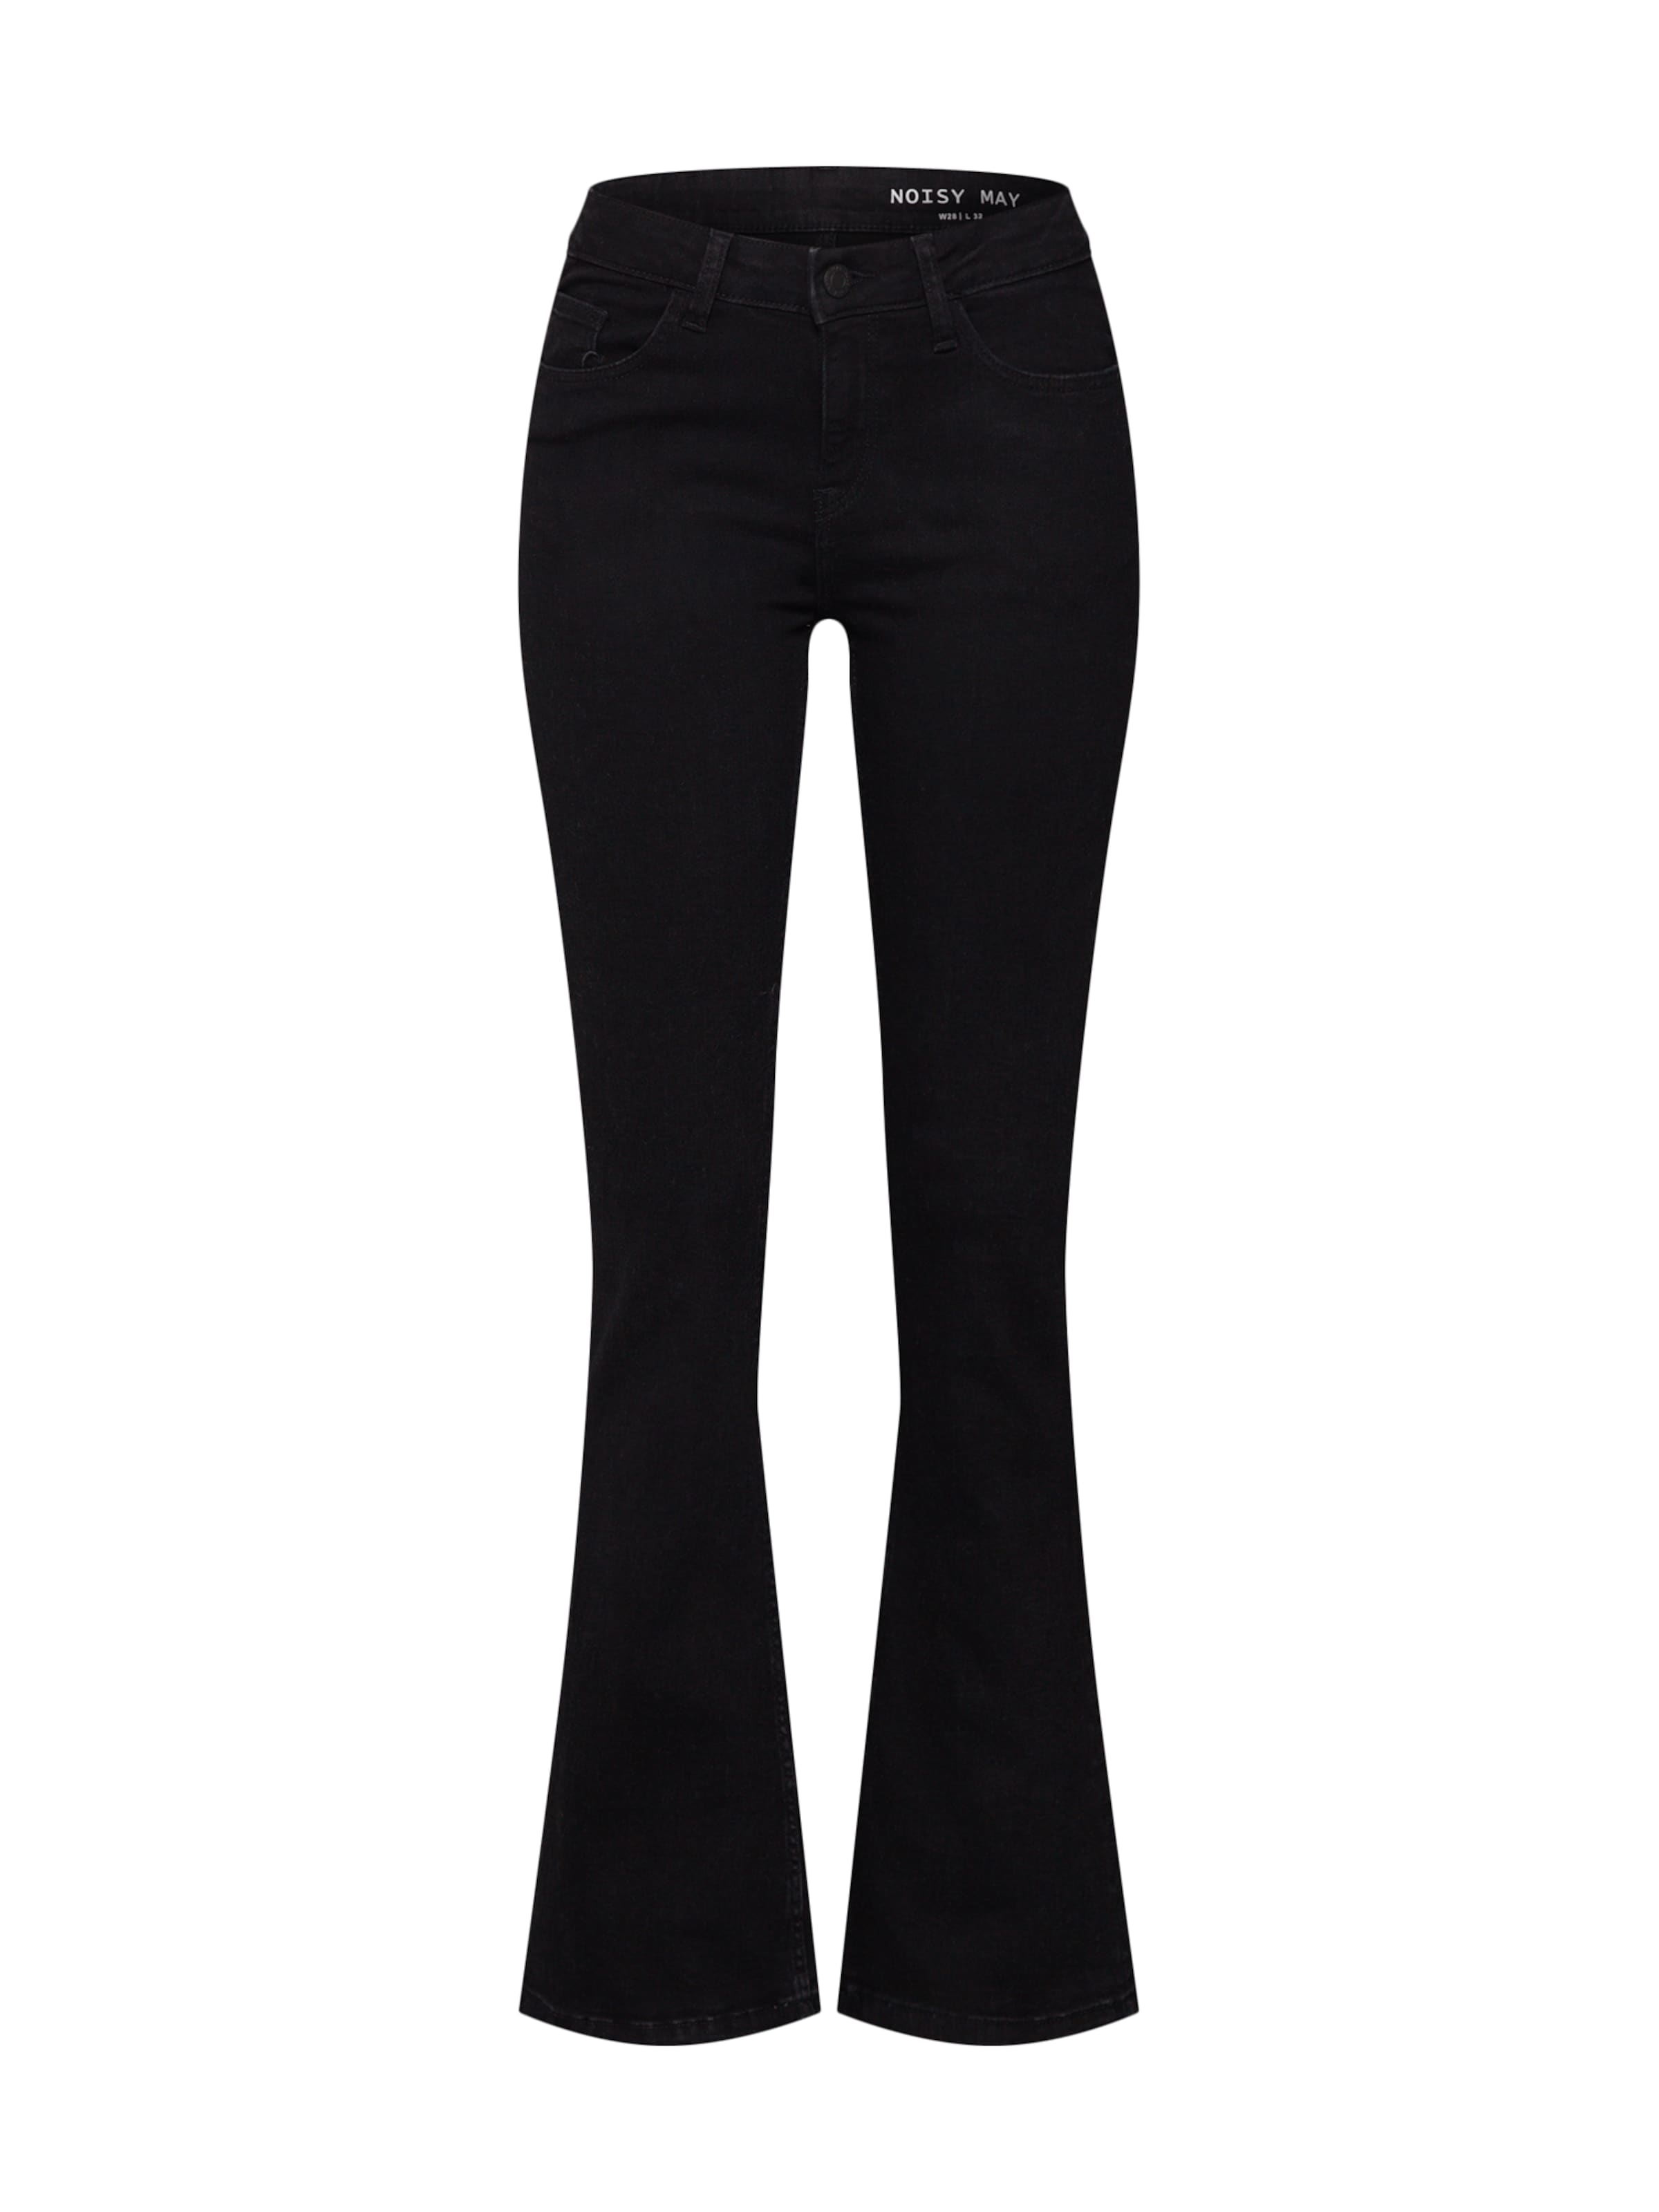 May Black Noisy Denim Jeans In hrCxsQdt